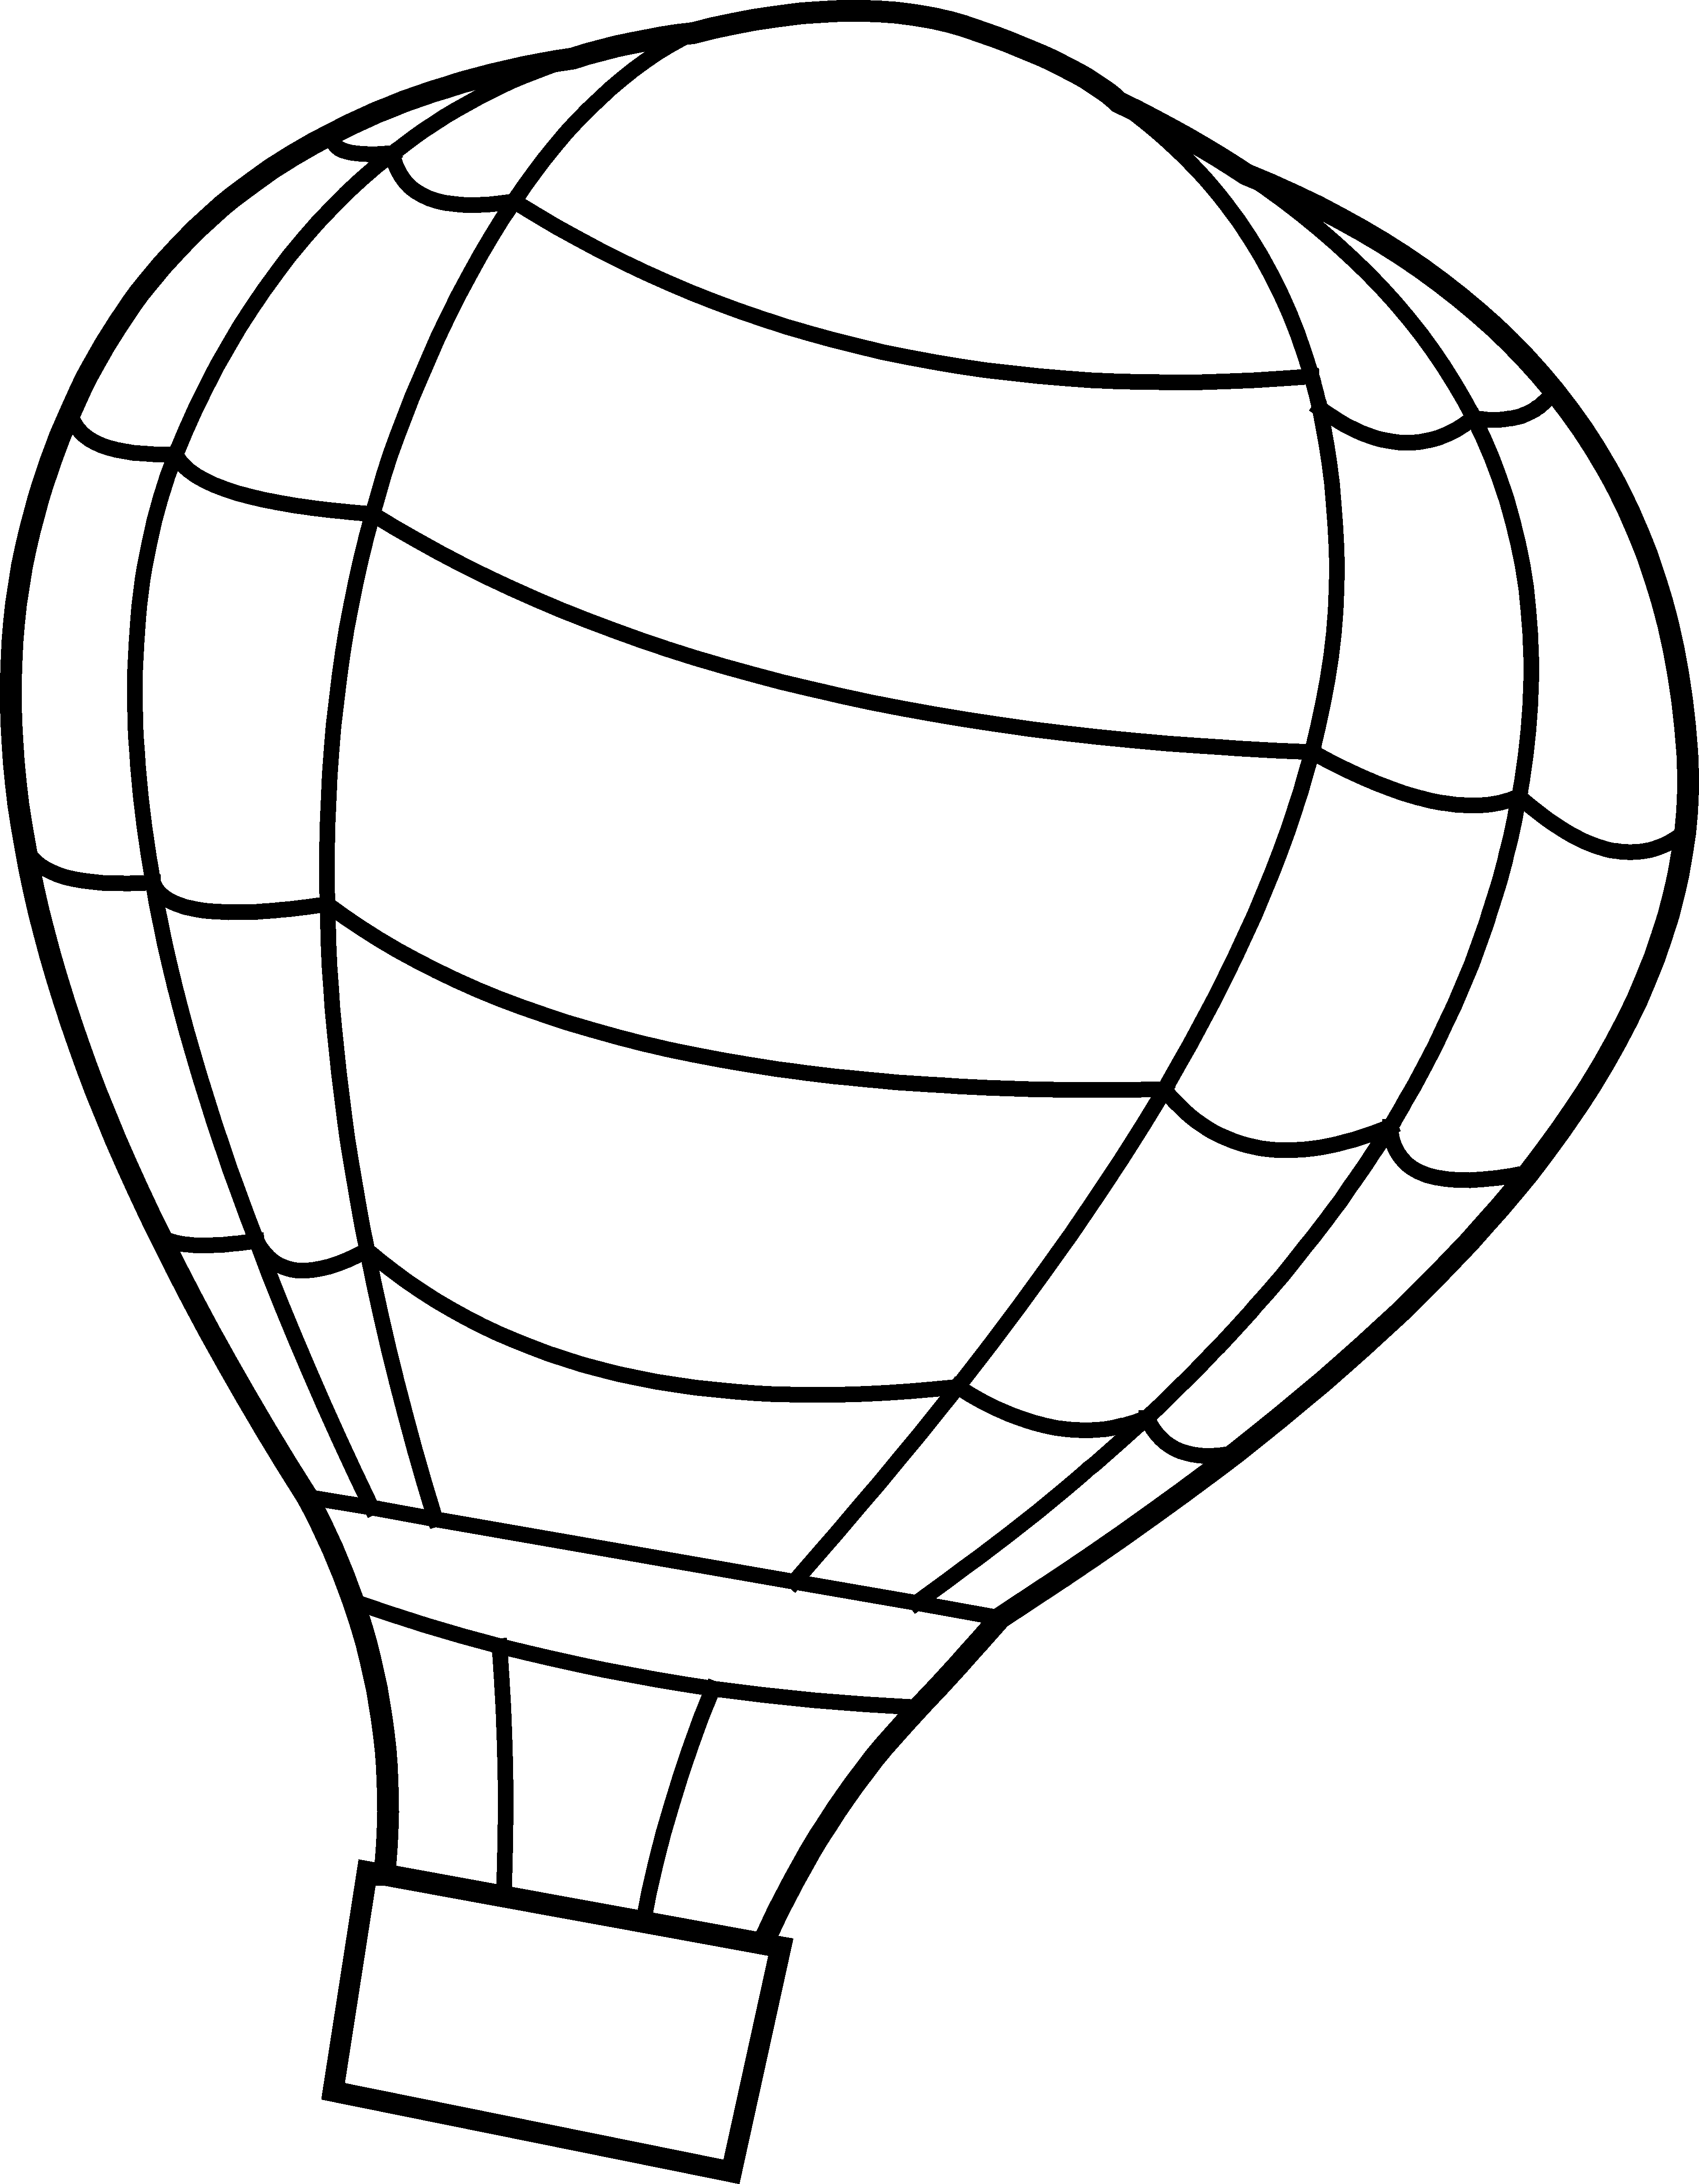 Hot Air Balloon Coloring Page   Free Clip Art - Hot Air Balloon Black And White, Transparent background PNG HD thumbnail